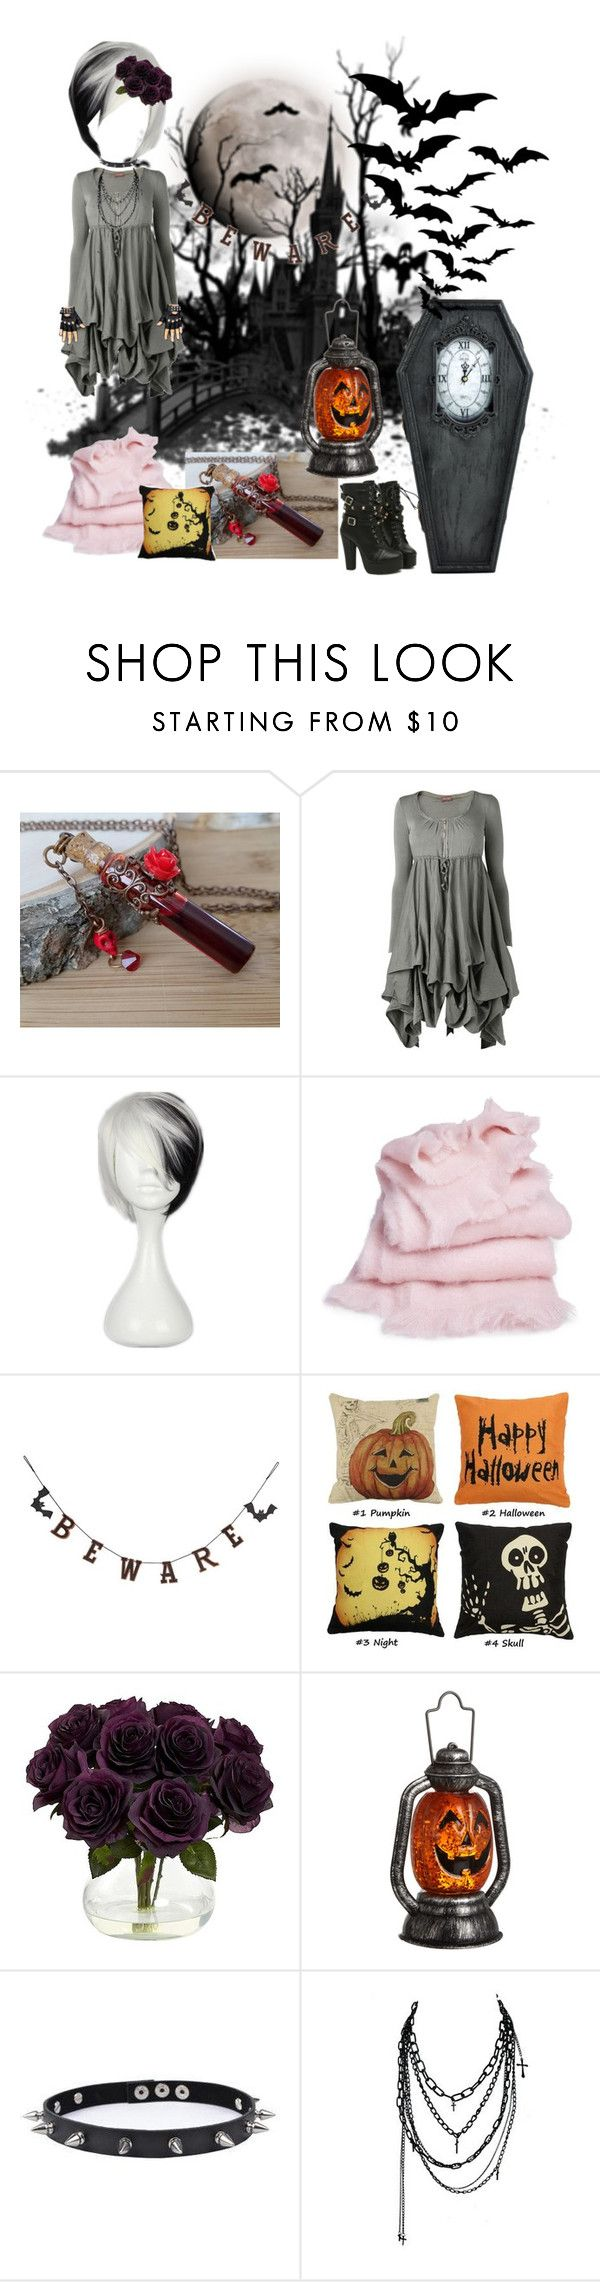 """Don't Wake Me till Halloween"" by rilakkuma394 ❤ liked on Polyvore featuring Phase Eight, abcDNA, Creative Co-op, Nearly Natural, John Lewis, Trend Cool and Bakers"